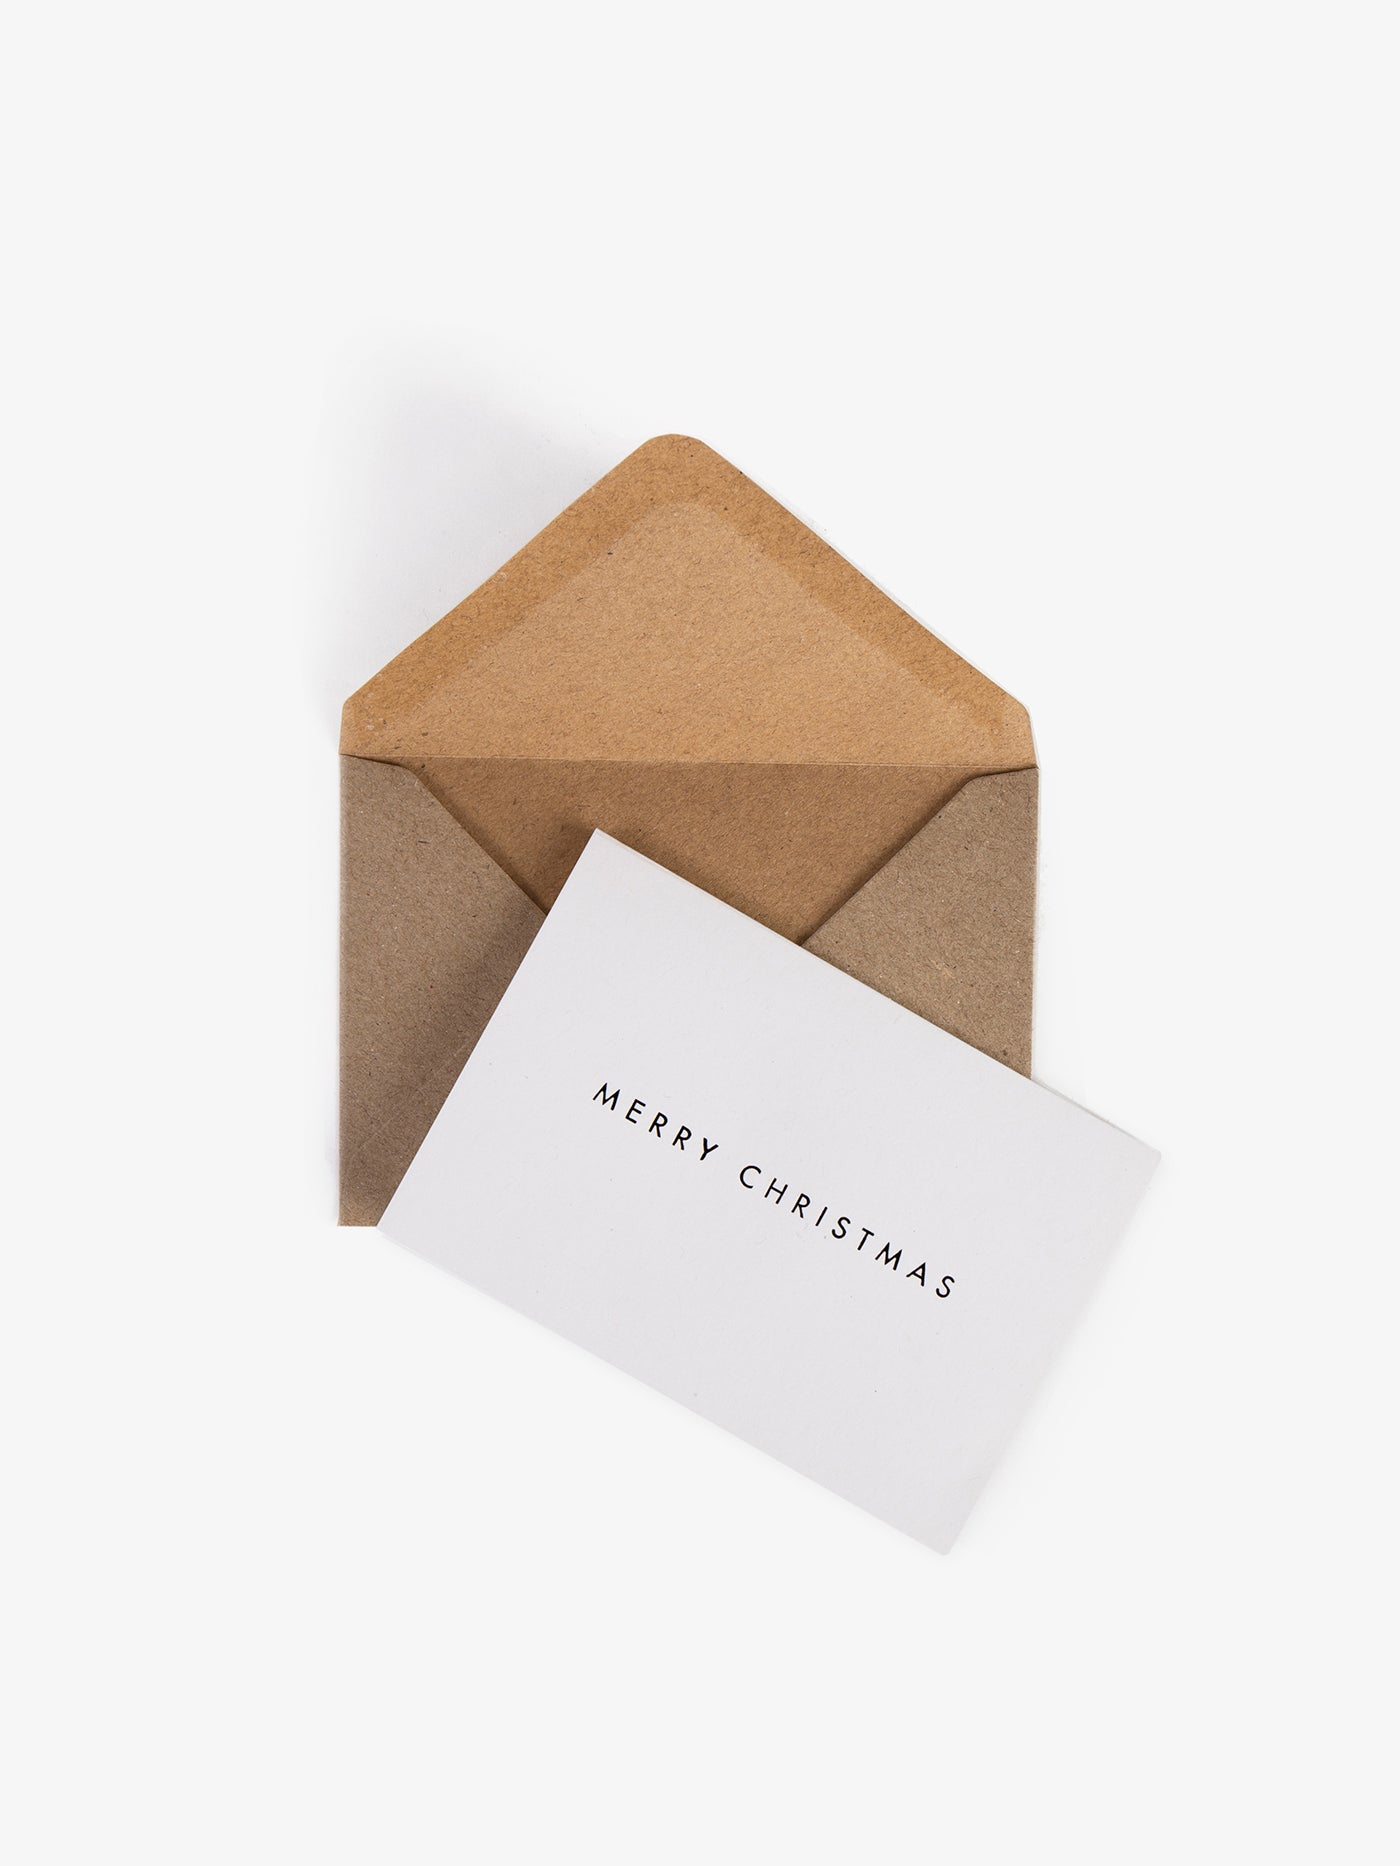 Greeting Cards small Merry Christmas Low key good